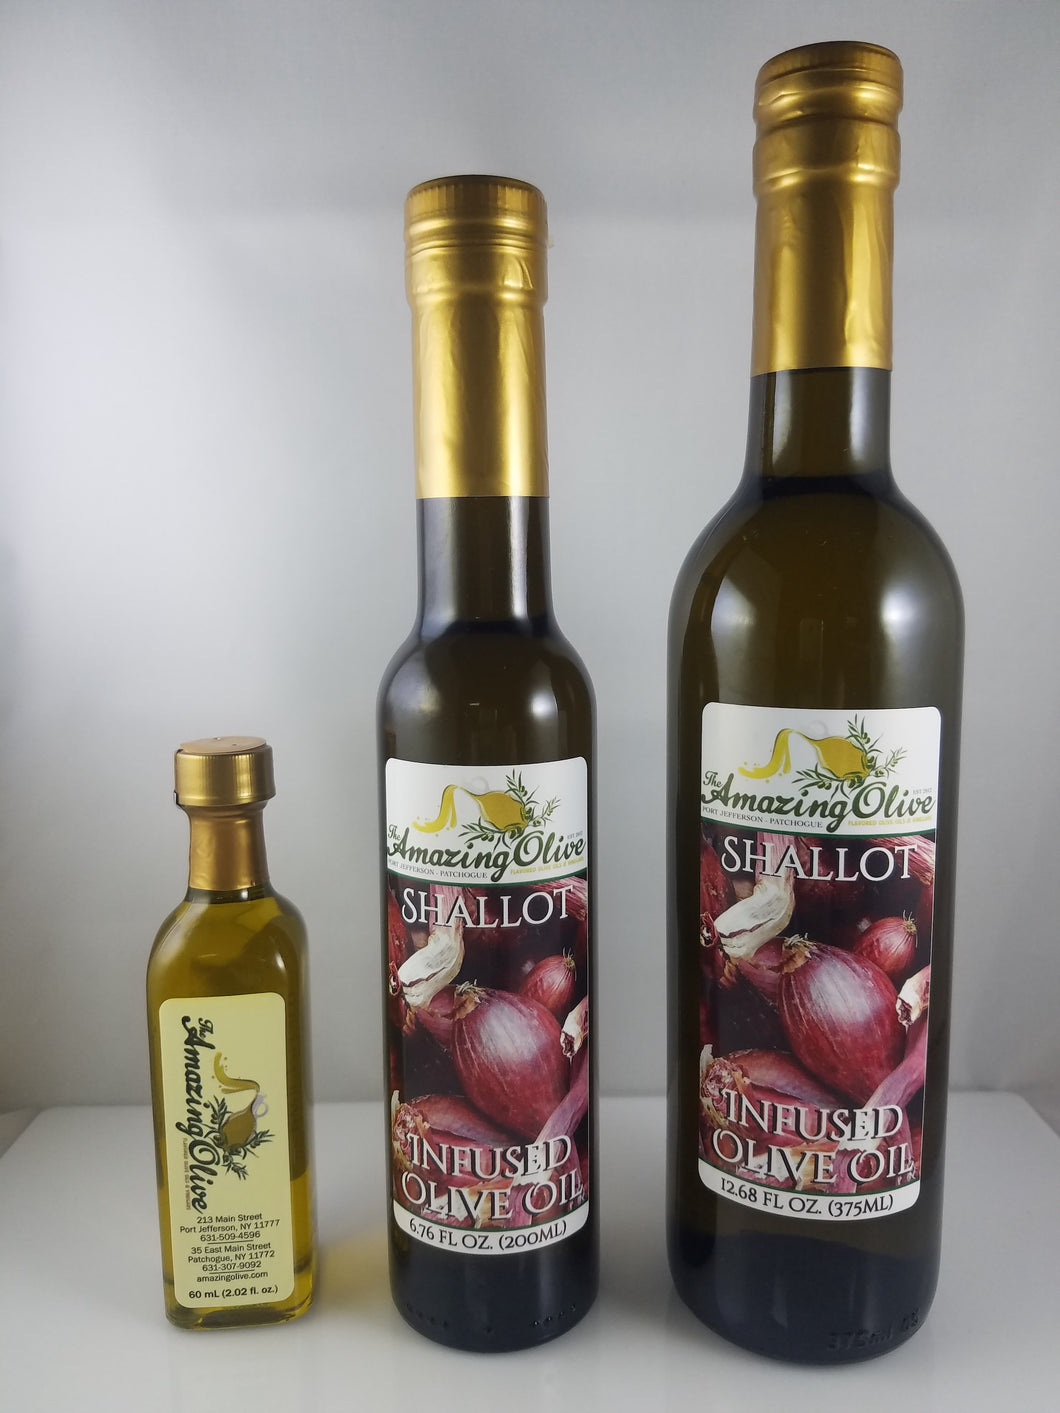 Shallot Infused Olive Oil